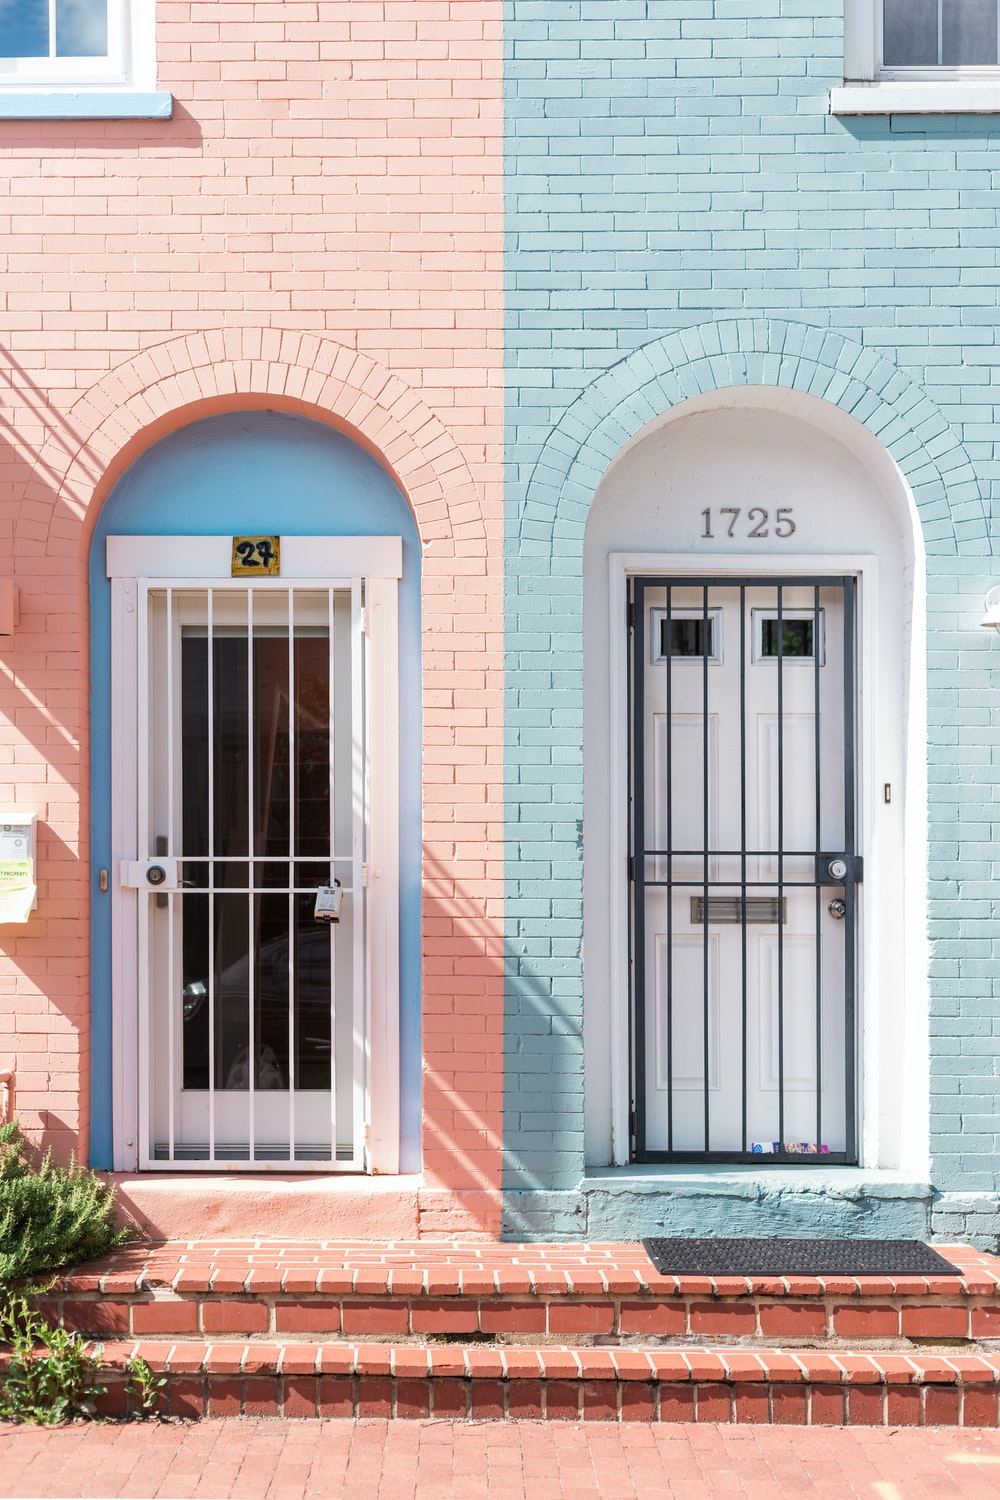 two white wooden doors with grills